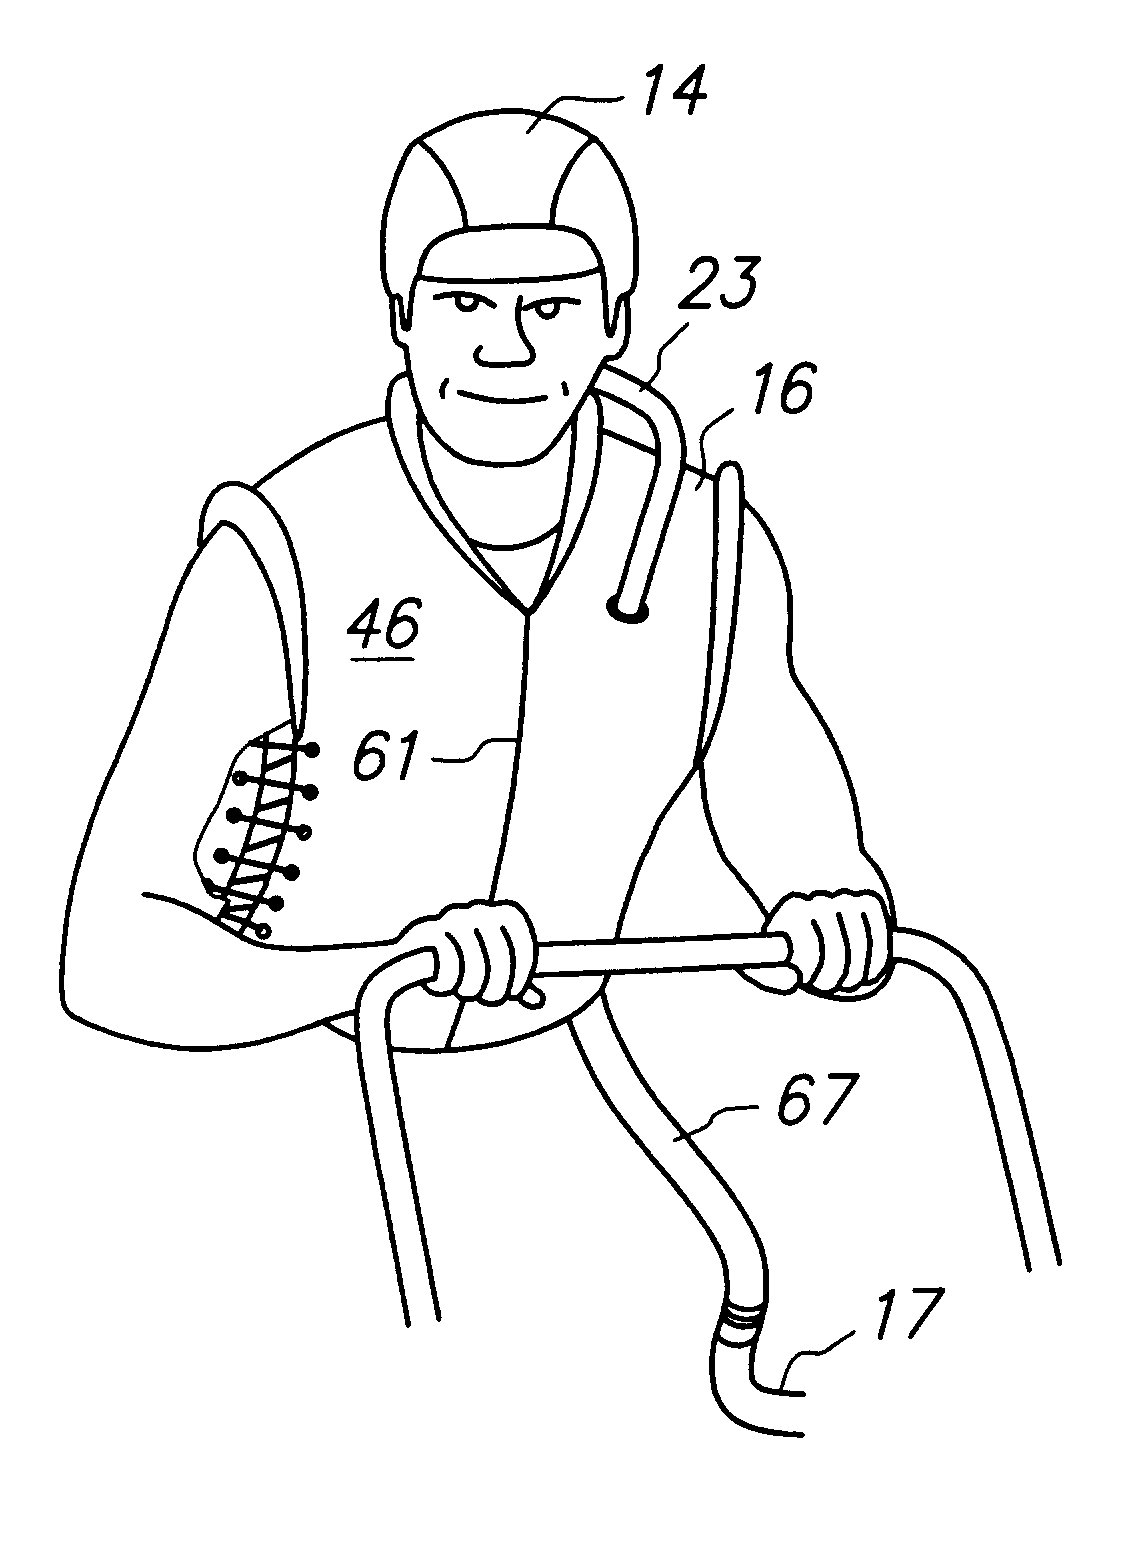 naaman coloring pages - photo #11